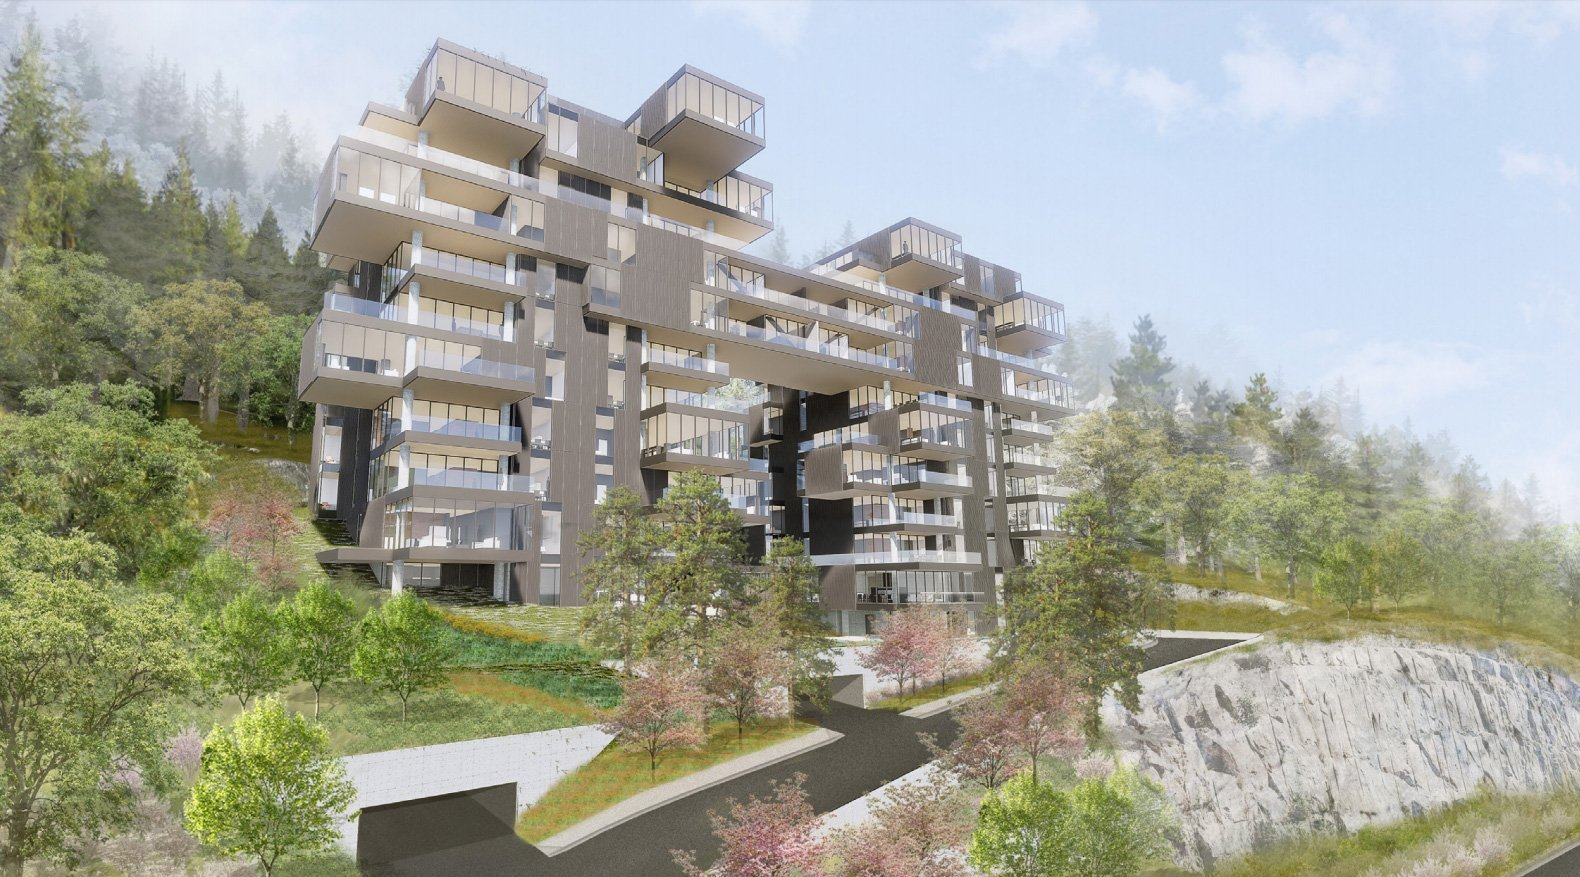 """Tree House"" to be perched on slope of Cypress Mountain in West Vancouver"